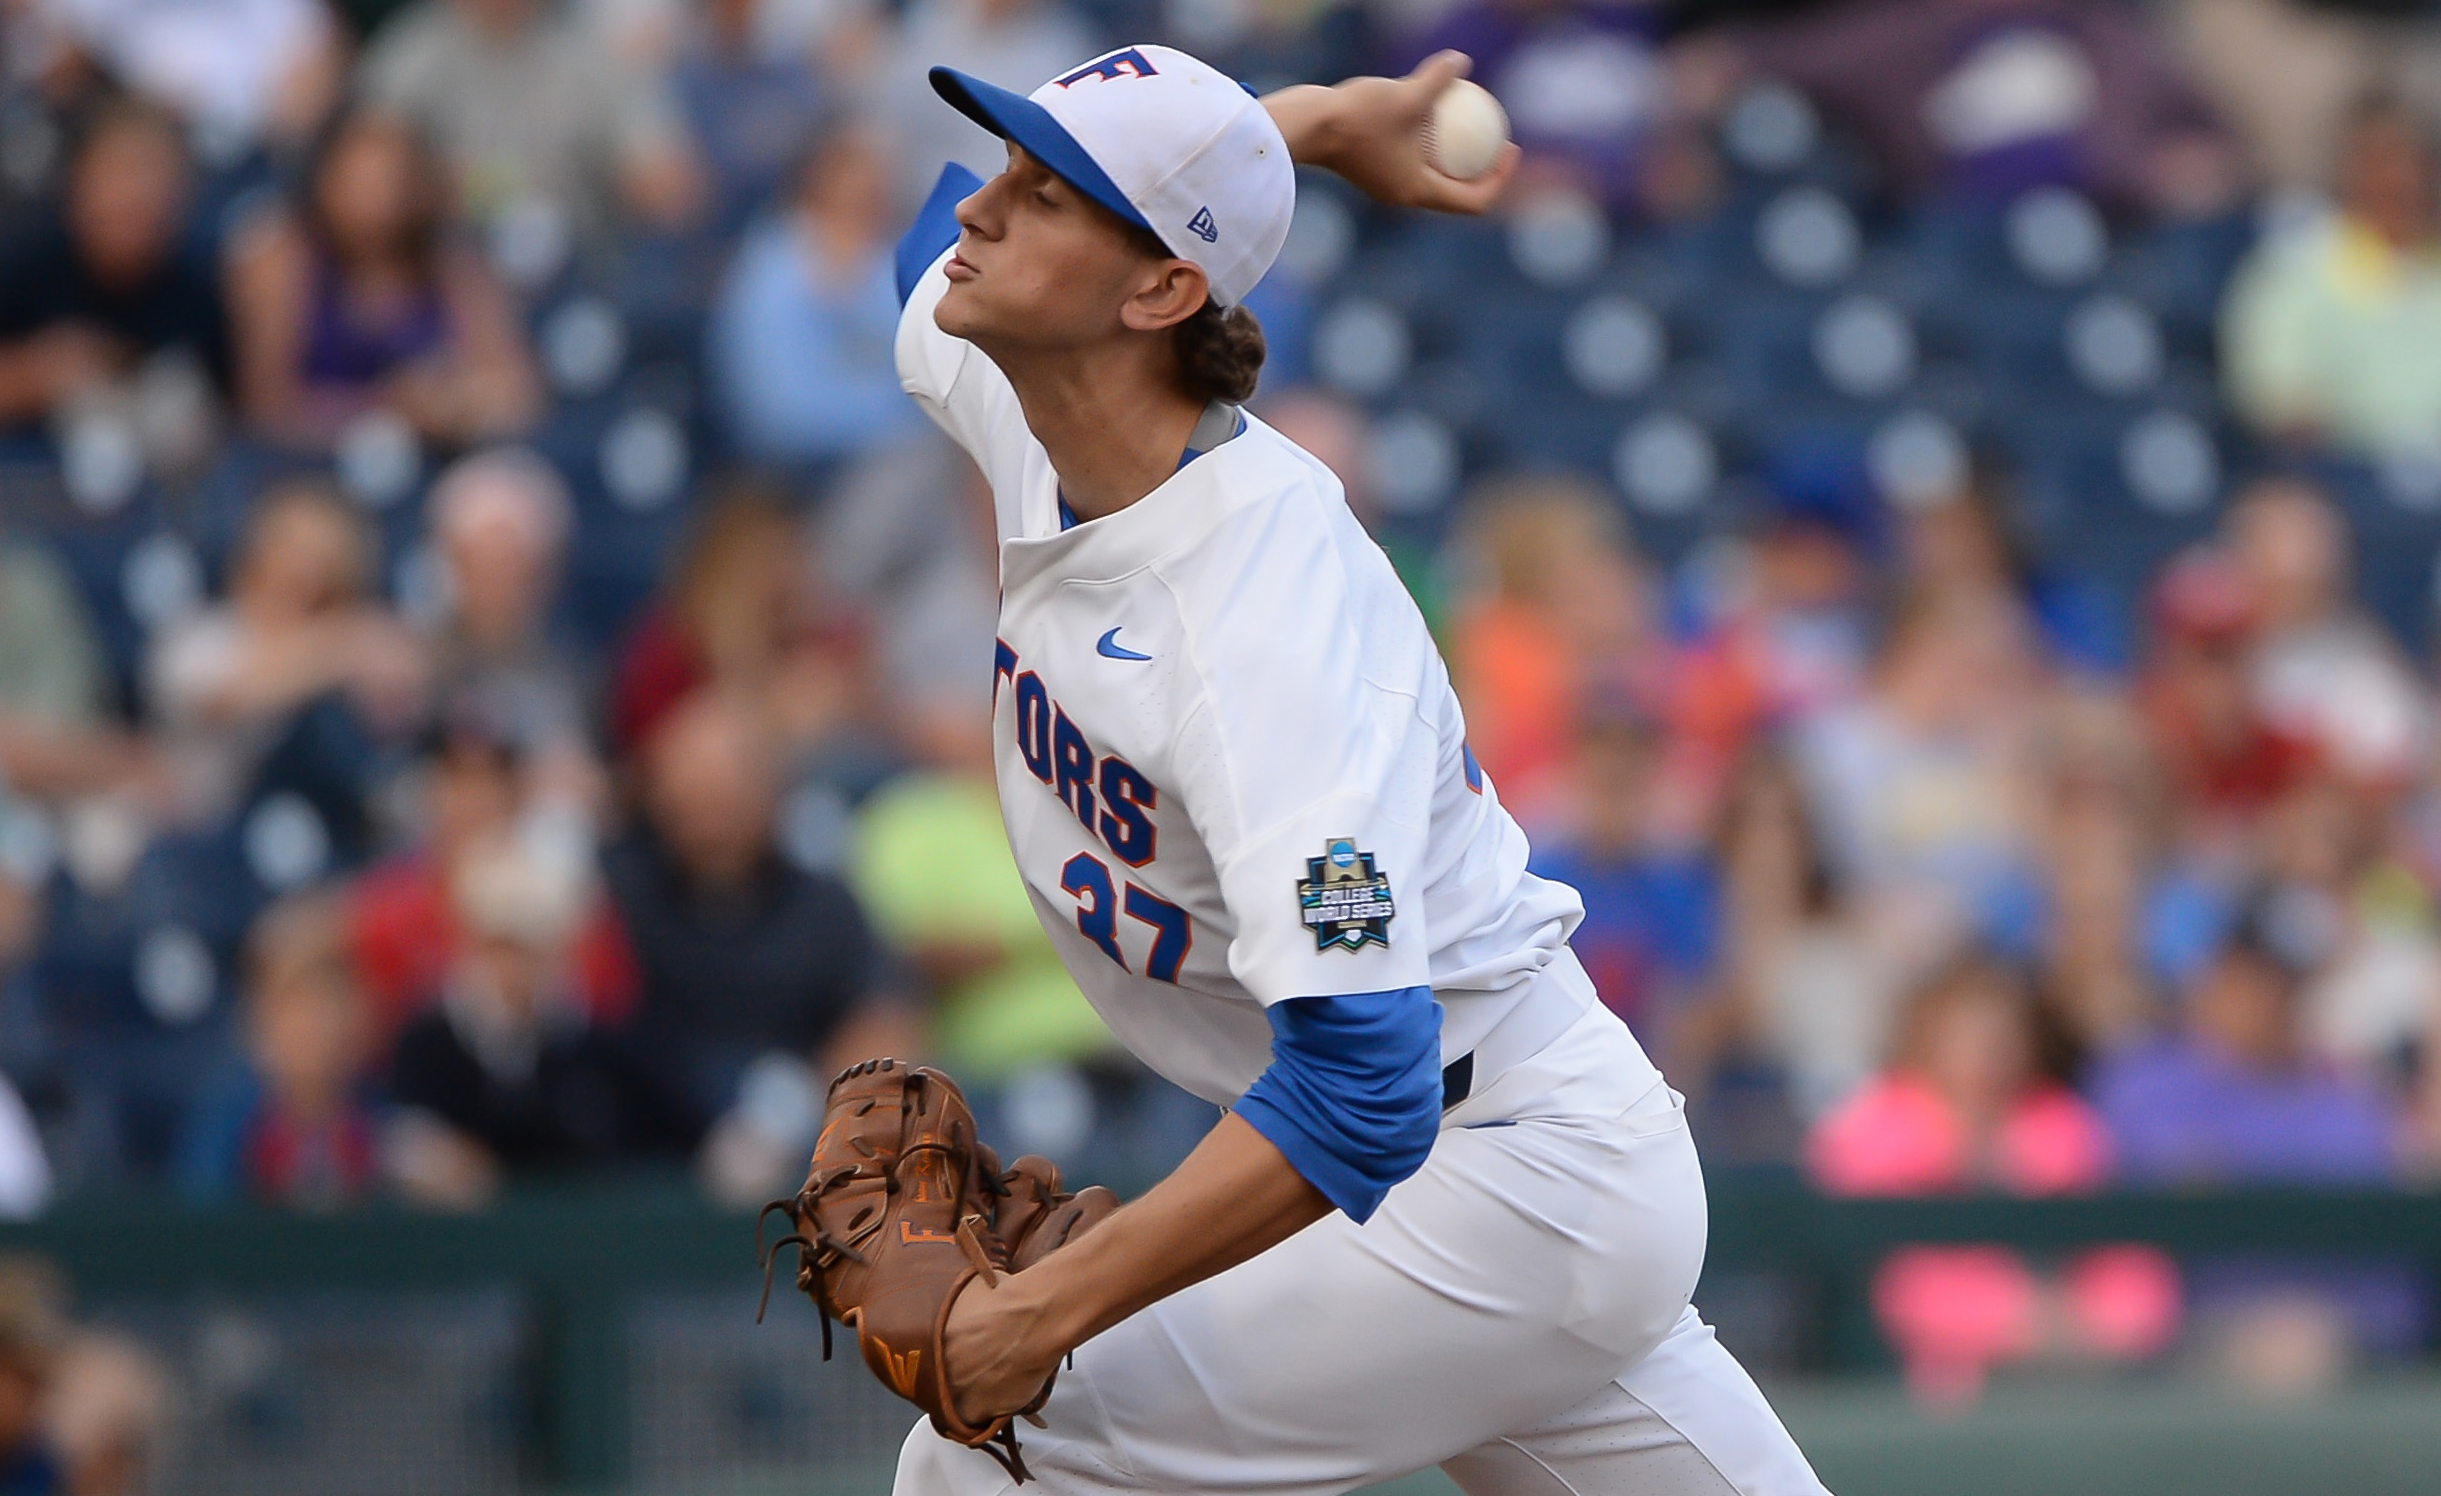 Jun 23, 2017; Omaha, NE, USA; Florida Gators pitcher Jackson Kowar (37) pitches in the first inning against the TCU Horned Frogs at TD Ameritrade Park Omaha. Mandatory Credit: Steven Branscombe-USA TODAY Sports